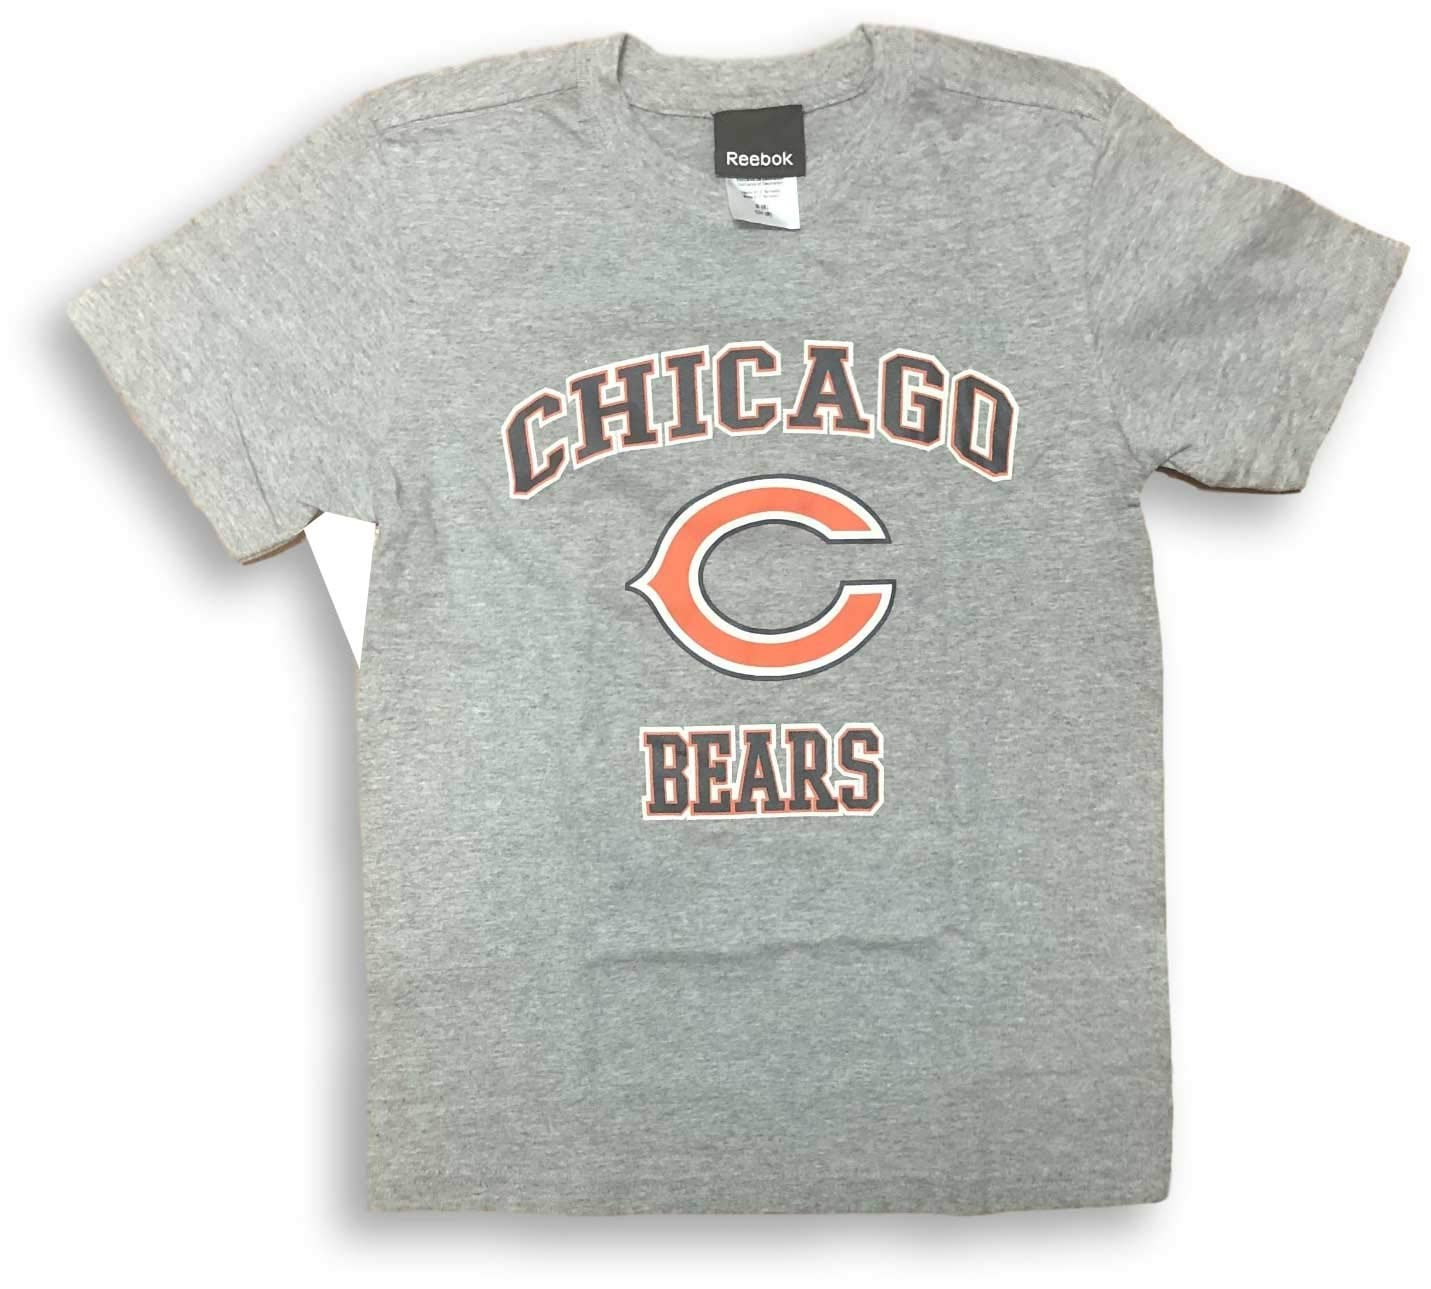 7c2c6aac Amazon.com : NFL Team Apparel Chicago Bears Name Logo Athletic Gray ...